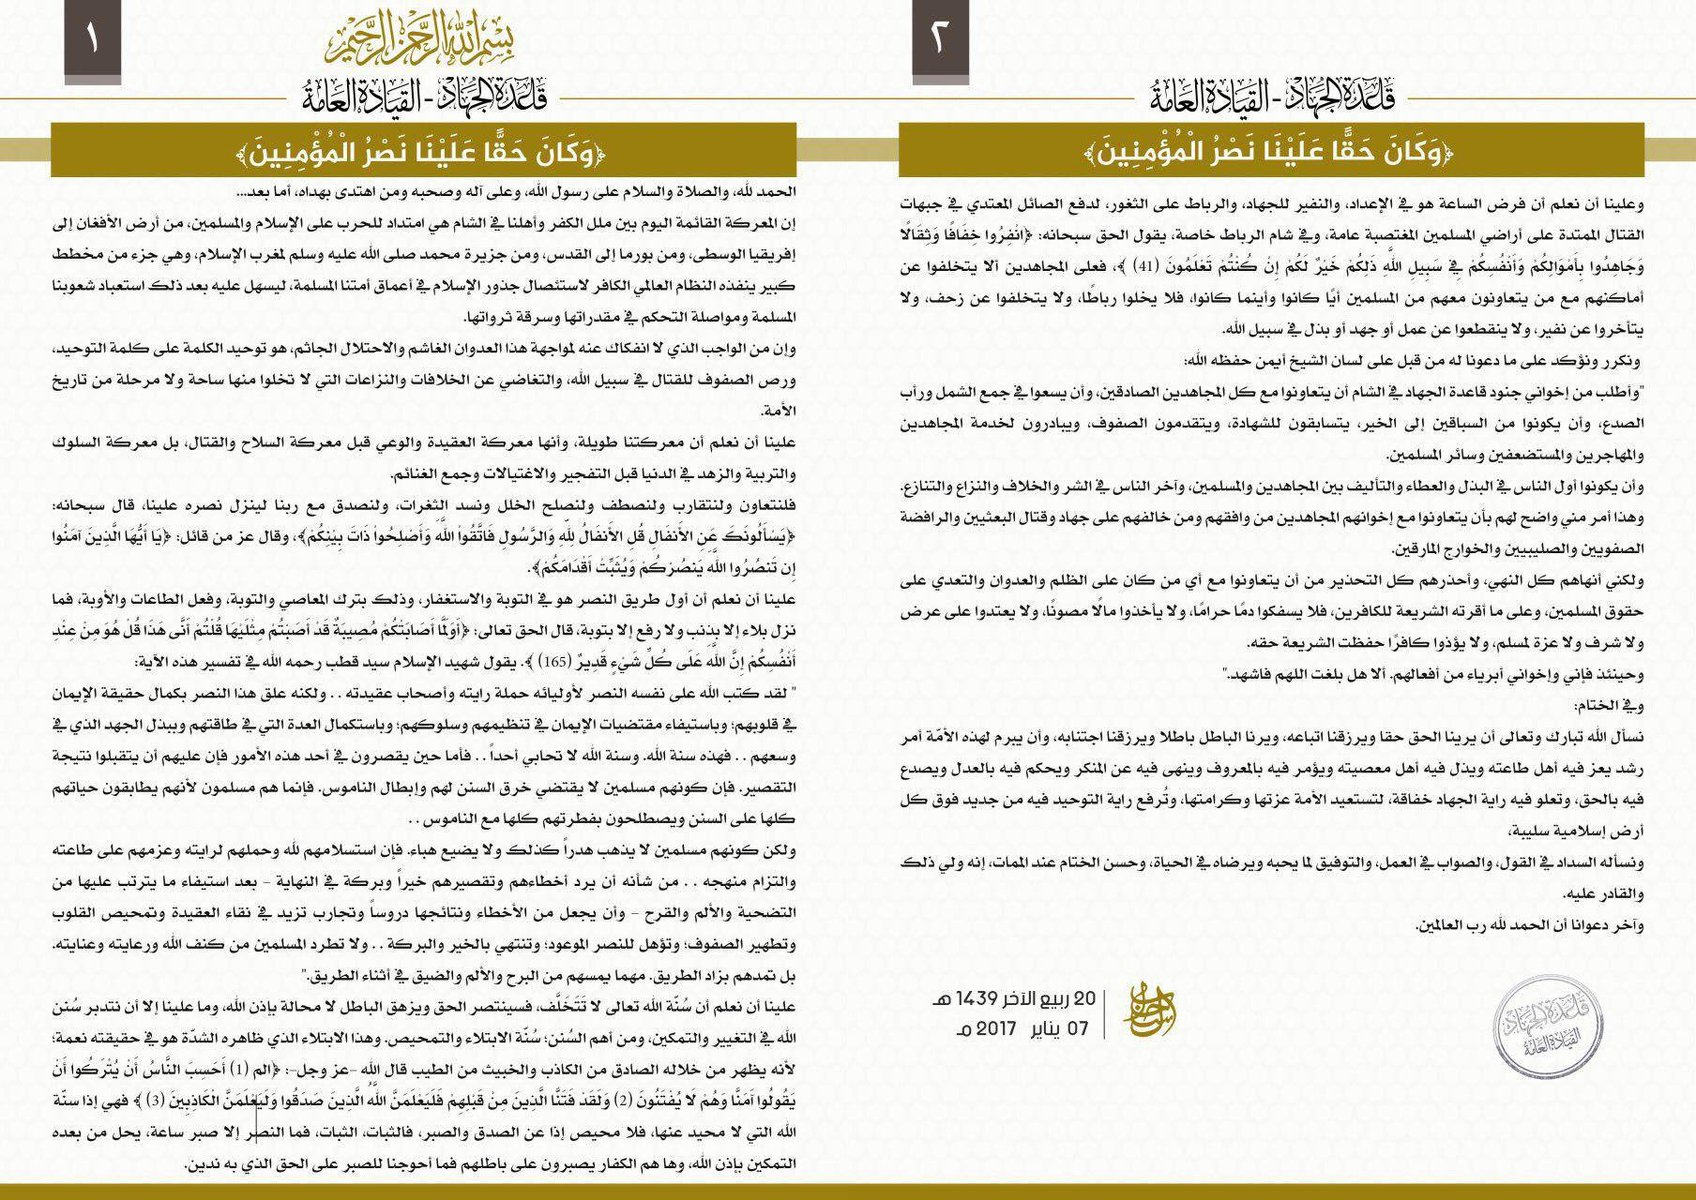 Al-Qaeda Officially Confirms That Its New Branch Is Operating In Idlib